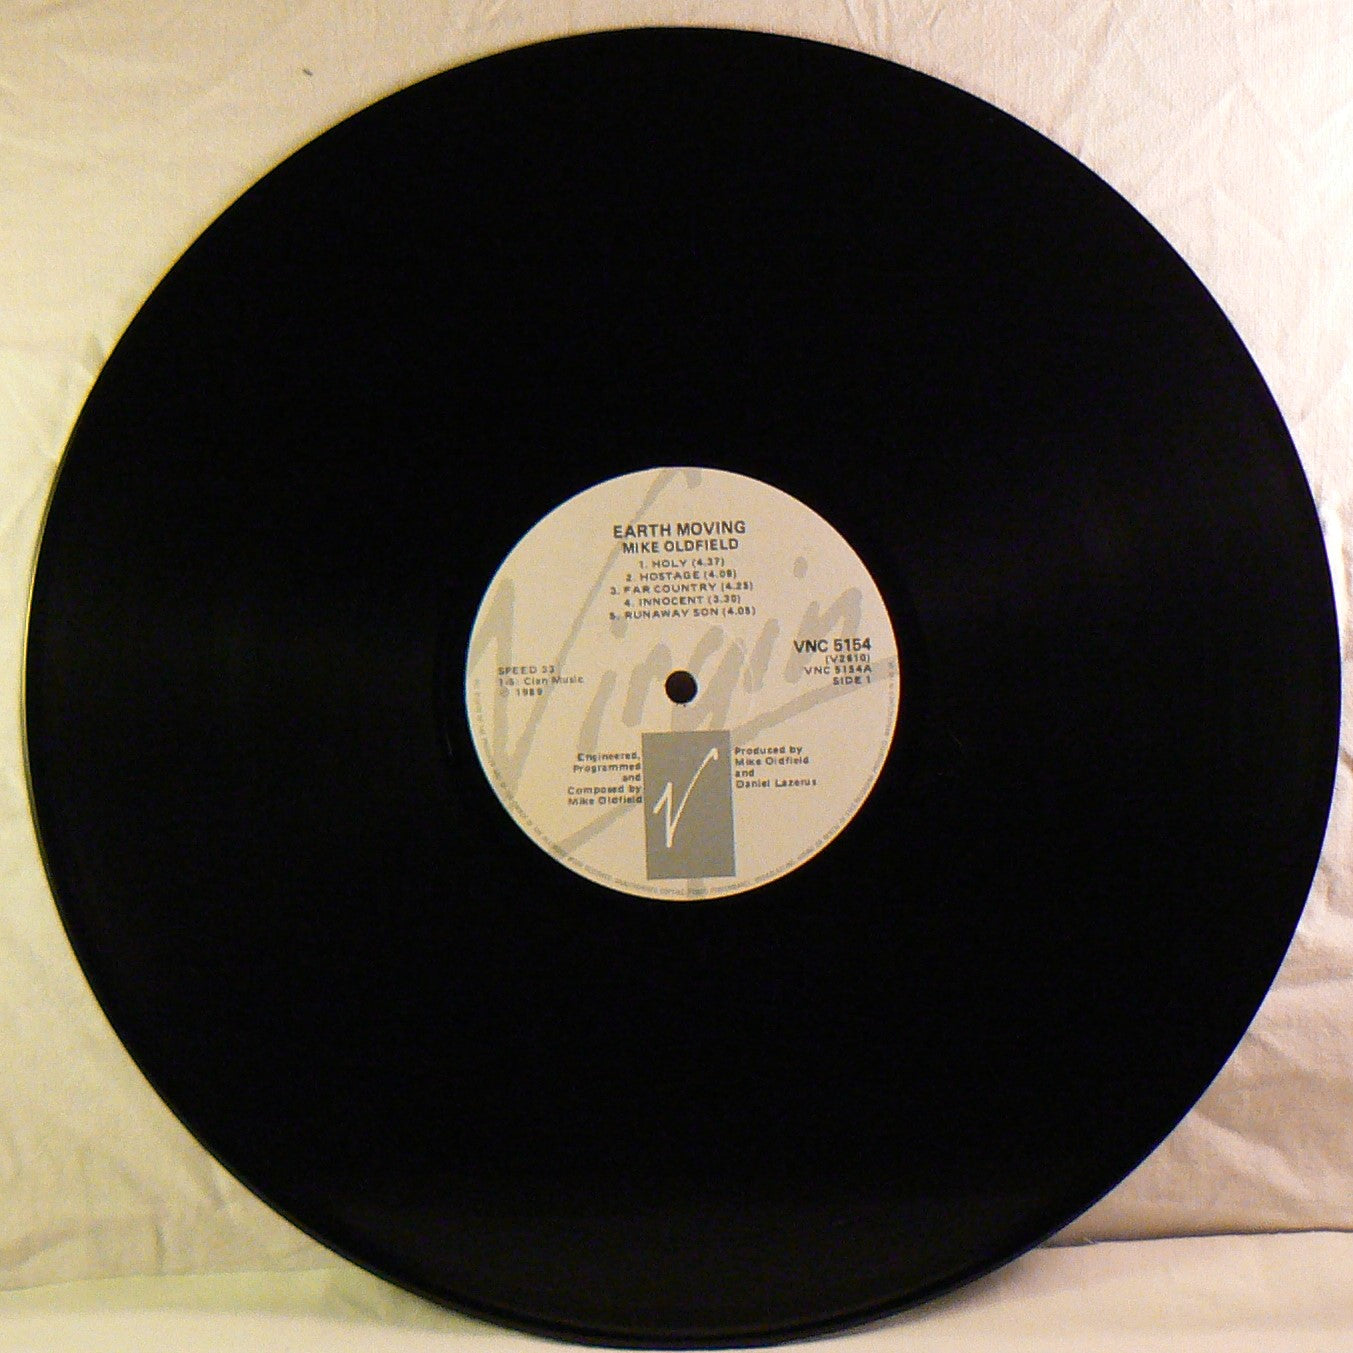 Vintage Second Hand Vinyl Records Page 7 Vinyl Cafe